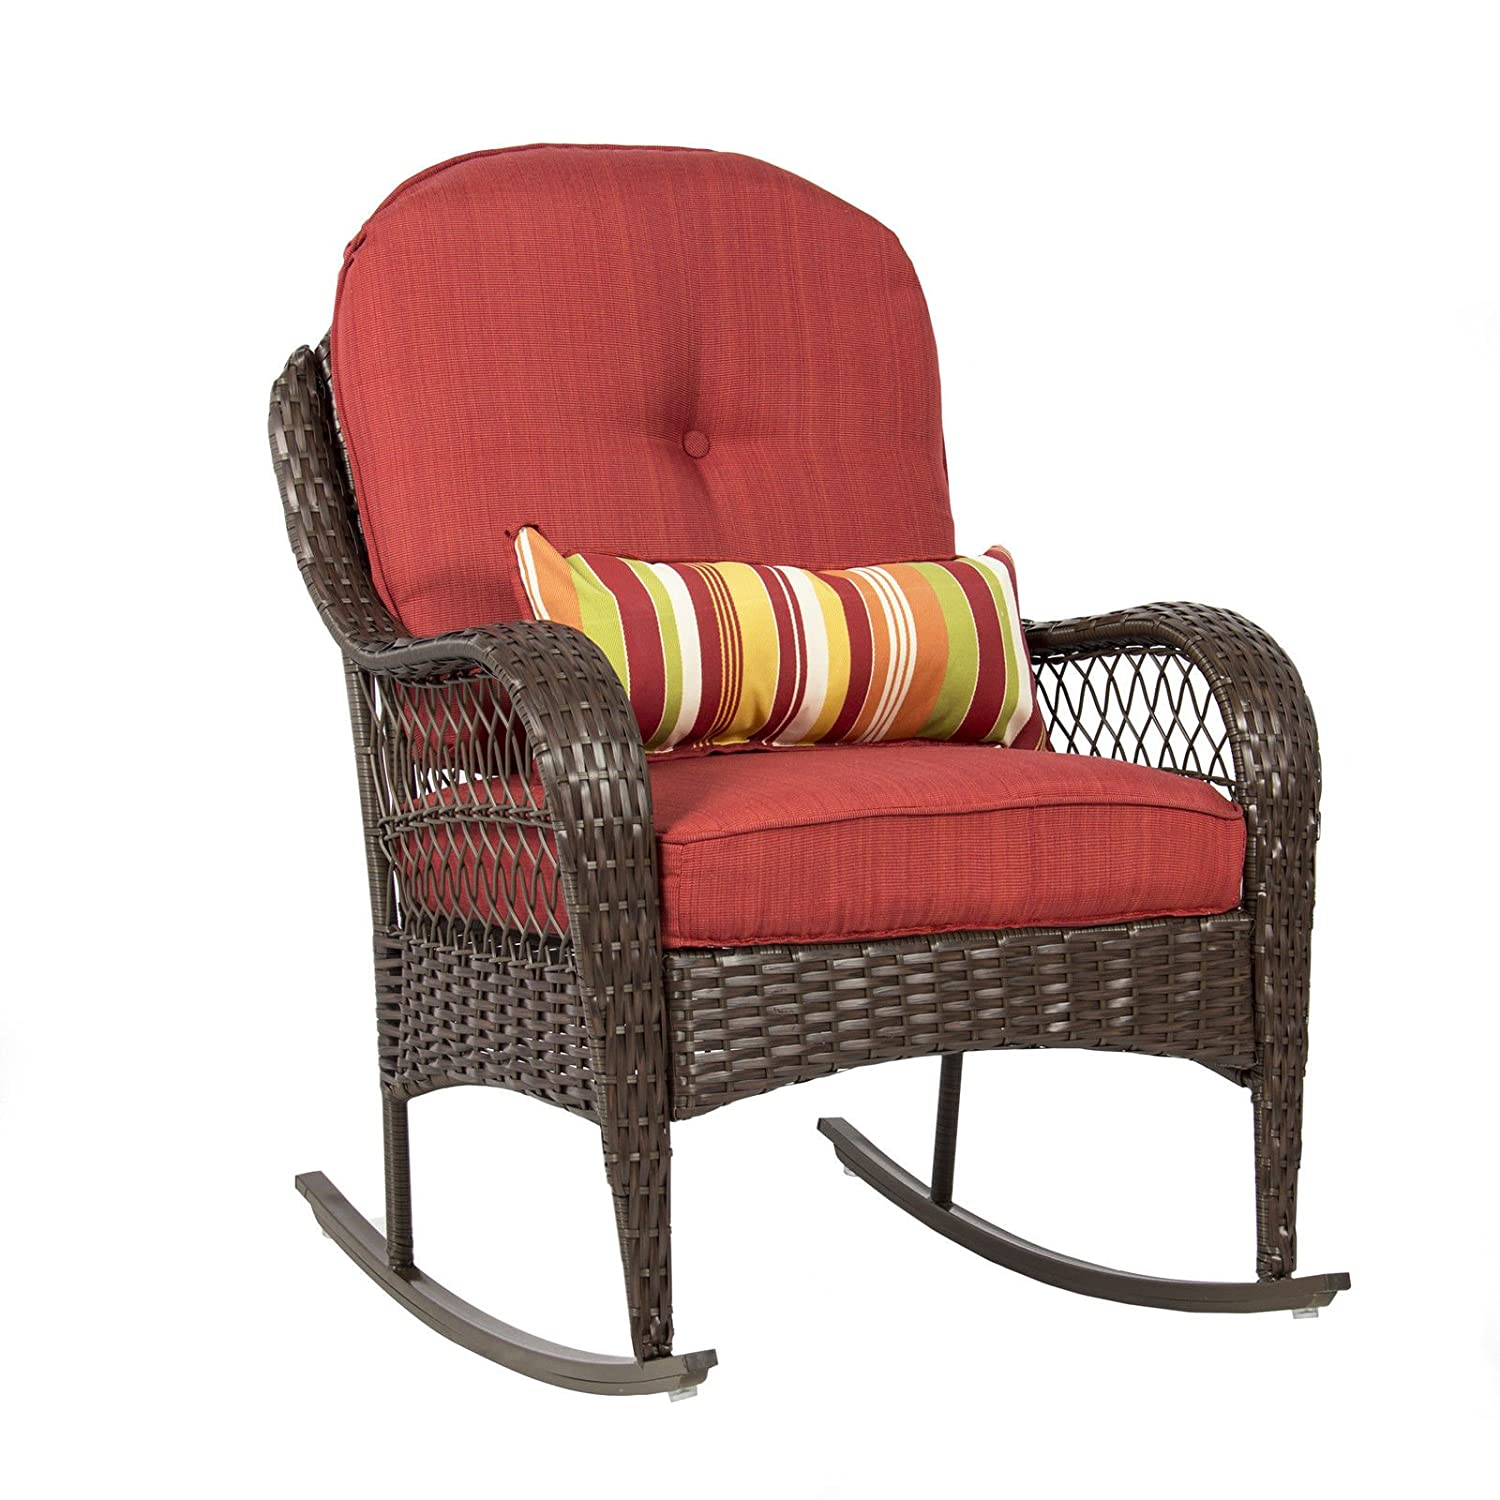 porch big lowes chairs dining best rockers picture furniture outdoor swivel of front